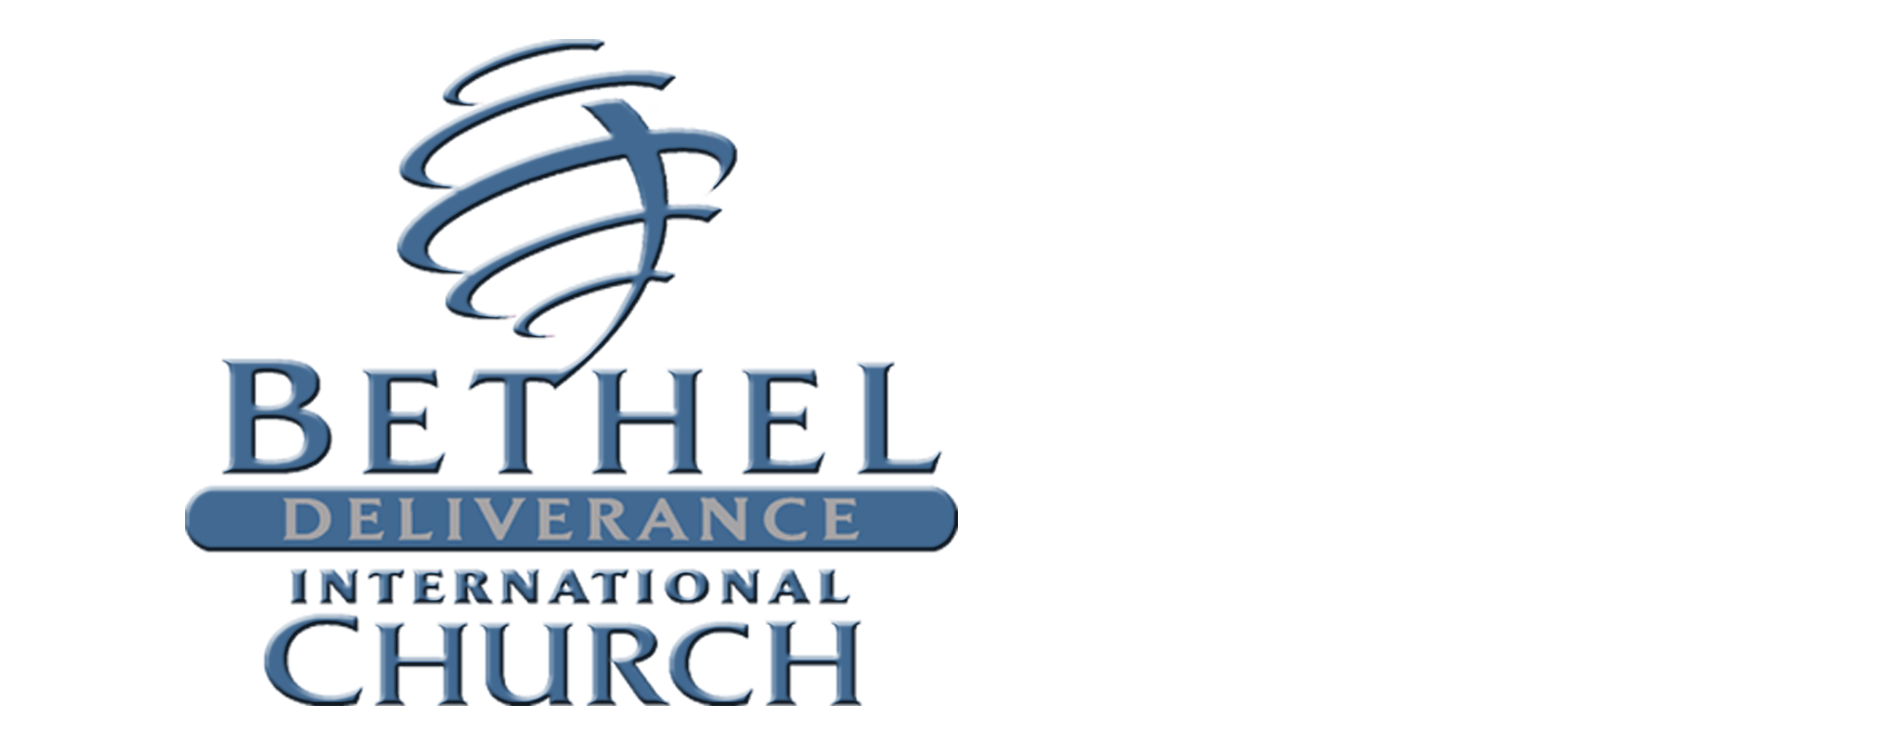 Bethel Deliverance International Church Logo